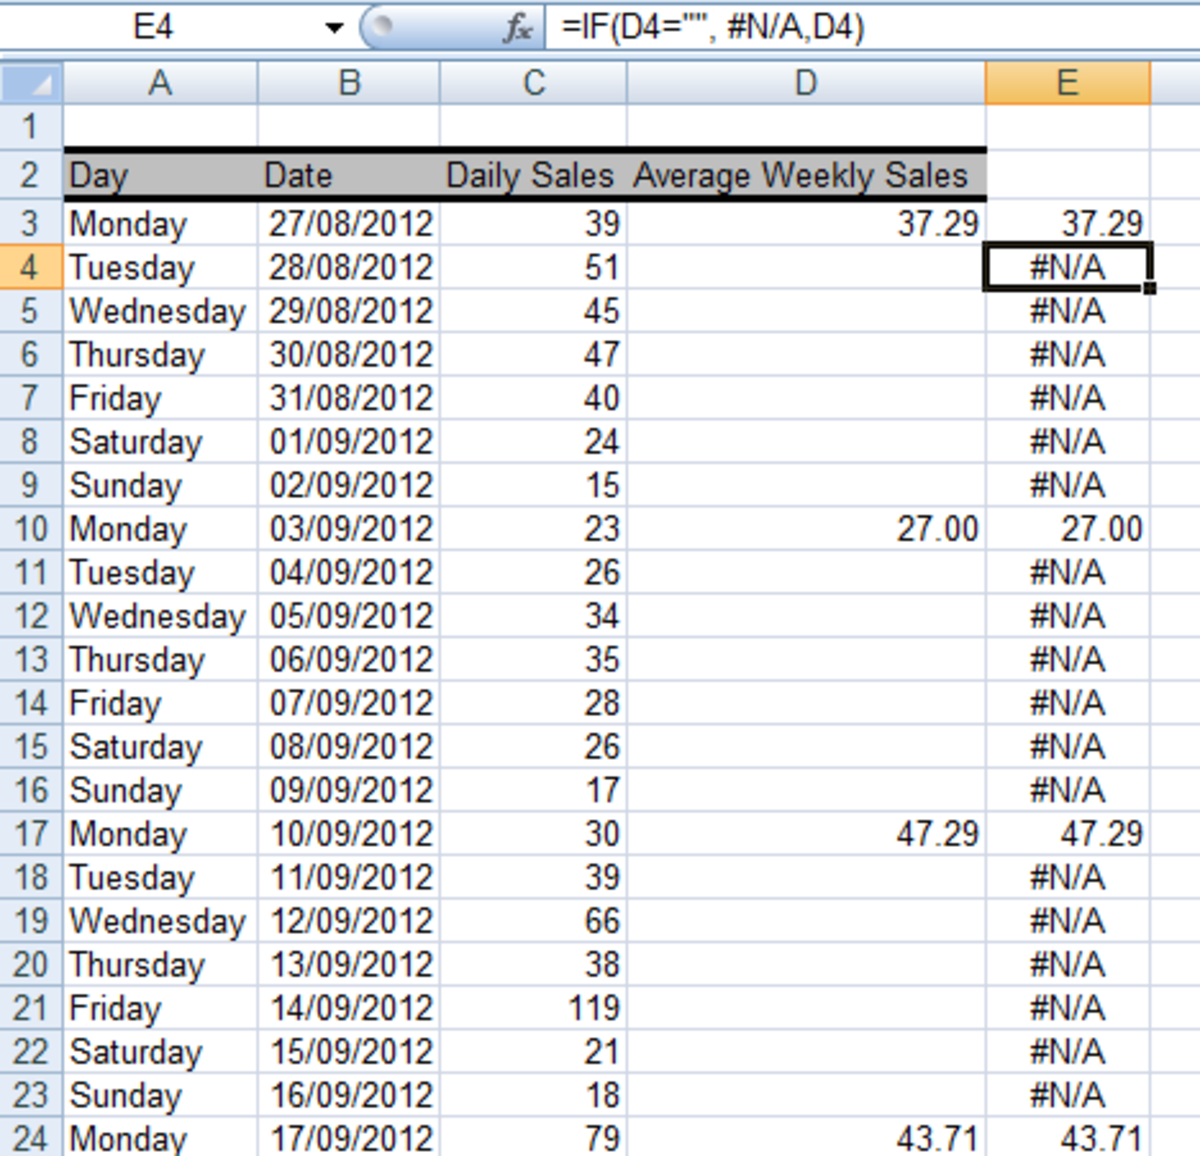 Ediblewildsus  Mesmerizing How To Get Excel  And  To Ignore Empty Cells In A Chart Or  With Luxury Using The If Function In A Formula To Convert Empty Cells To Na With Alluring Excel  Conditional Formatting Entire Row Also Listbox Excel Vba In Addition What Is The Average Formula In Excel And How To Add Chart In Excel As Well As Download Ms Excel Additionally Excel Day Of The Month From Turbofuturecom With Ediblewildsus  Luxury How To Get Excel  And  To Ignore Empty Cells In A Chart Or  With Alluring Using The If Function In A Formula To Convert Empty Cells To Na And Mesmerizing Excel  Conditional Formatting Entire Row Also Listbox Excel Vba In Addition What Is The Average Formula In Excel From Turbofuturecom